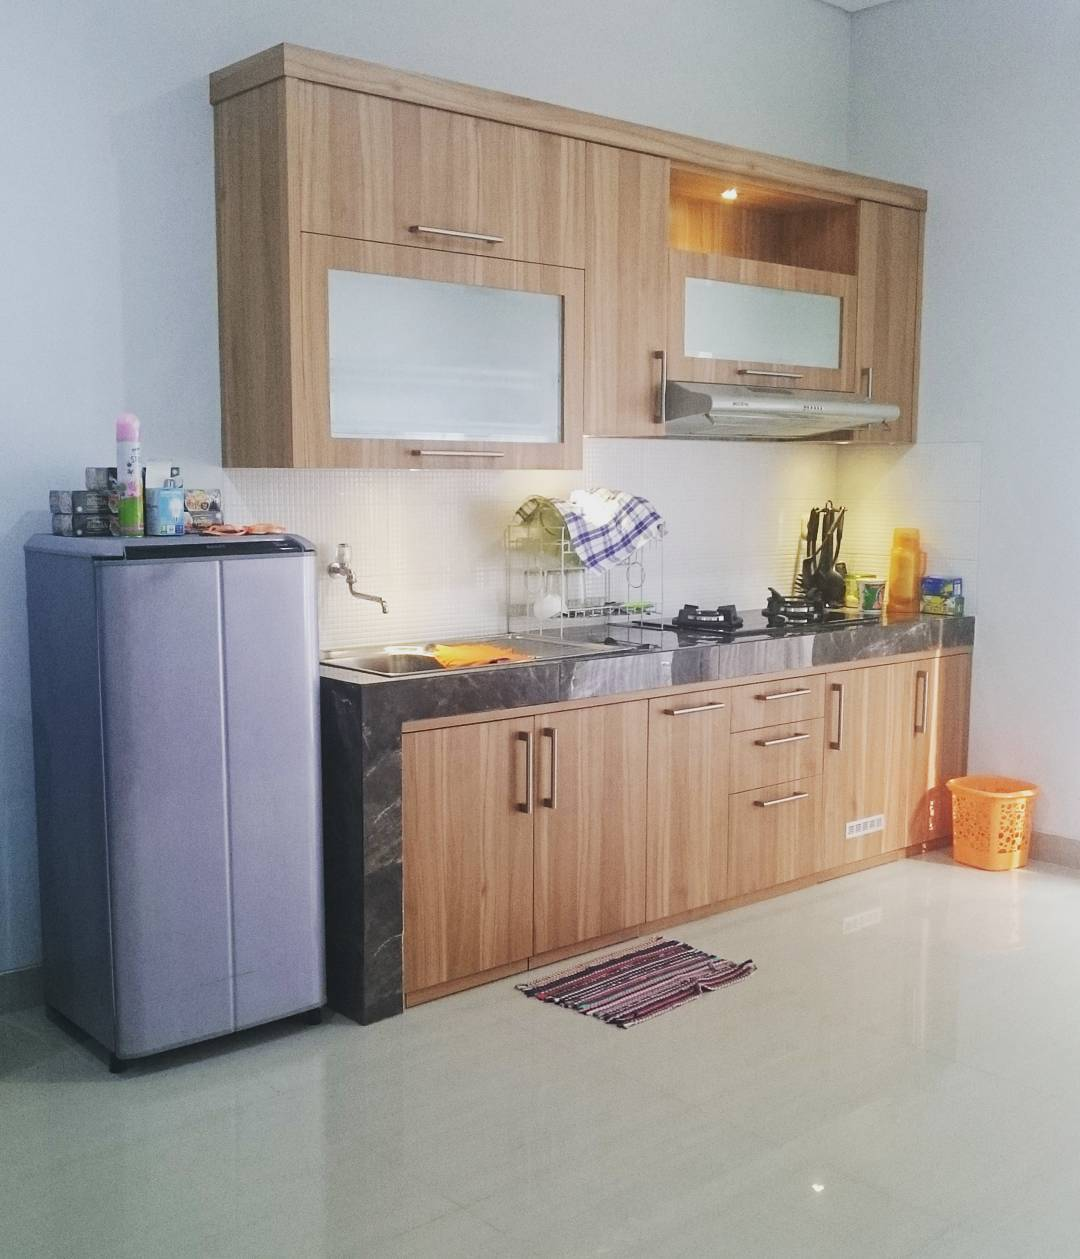 Kitchen Set Rumah Type 36: Dekorasi Dapur Yang Simple